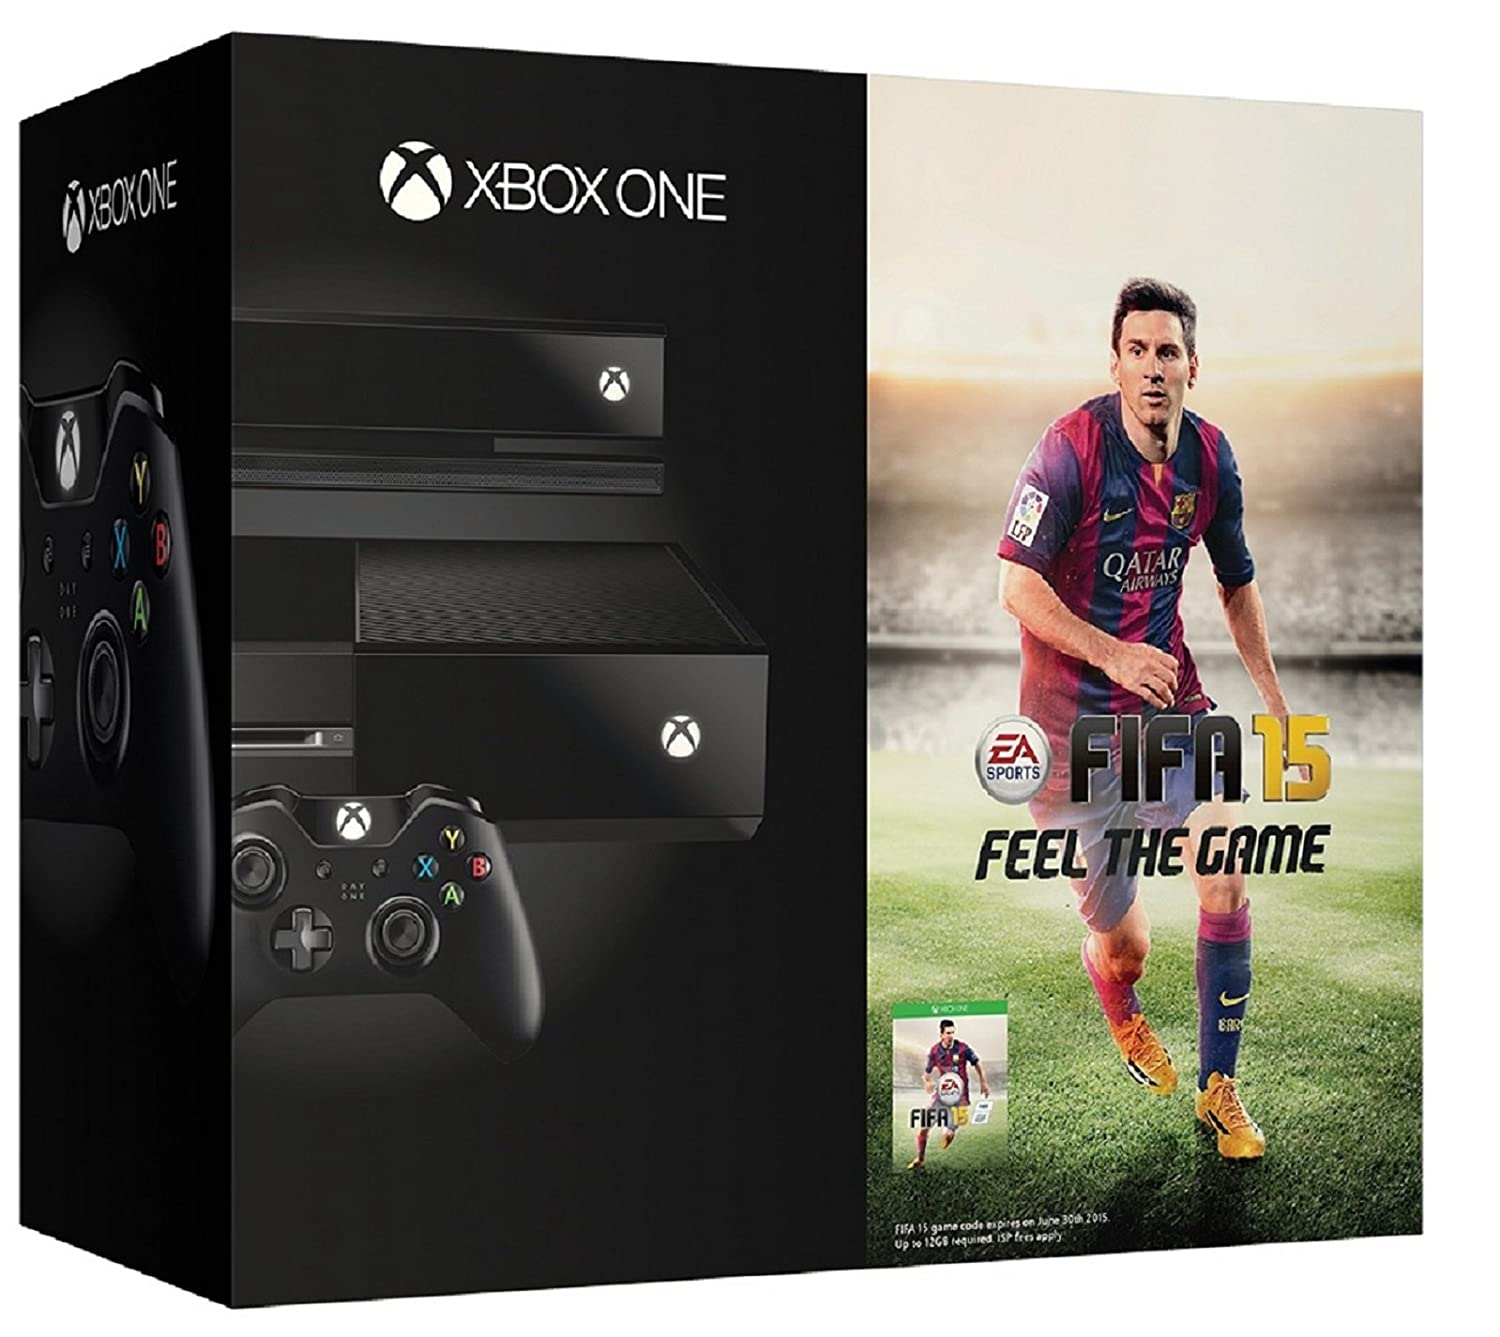 Amazon Exclusive - Pre order now Xbox One Console with Kinect